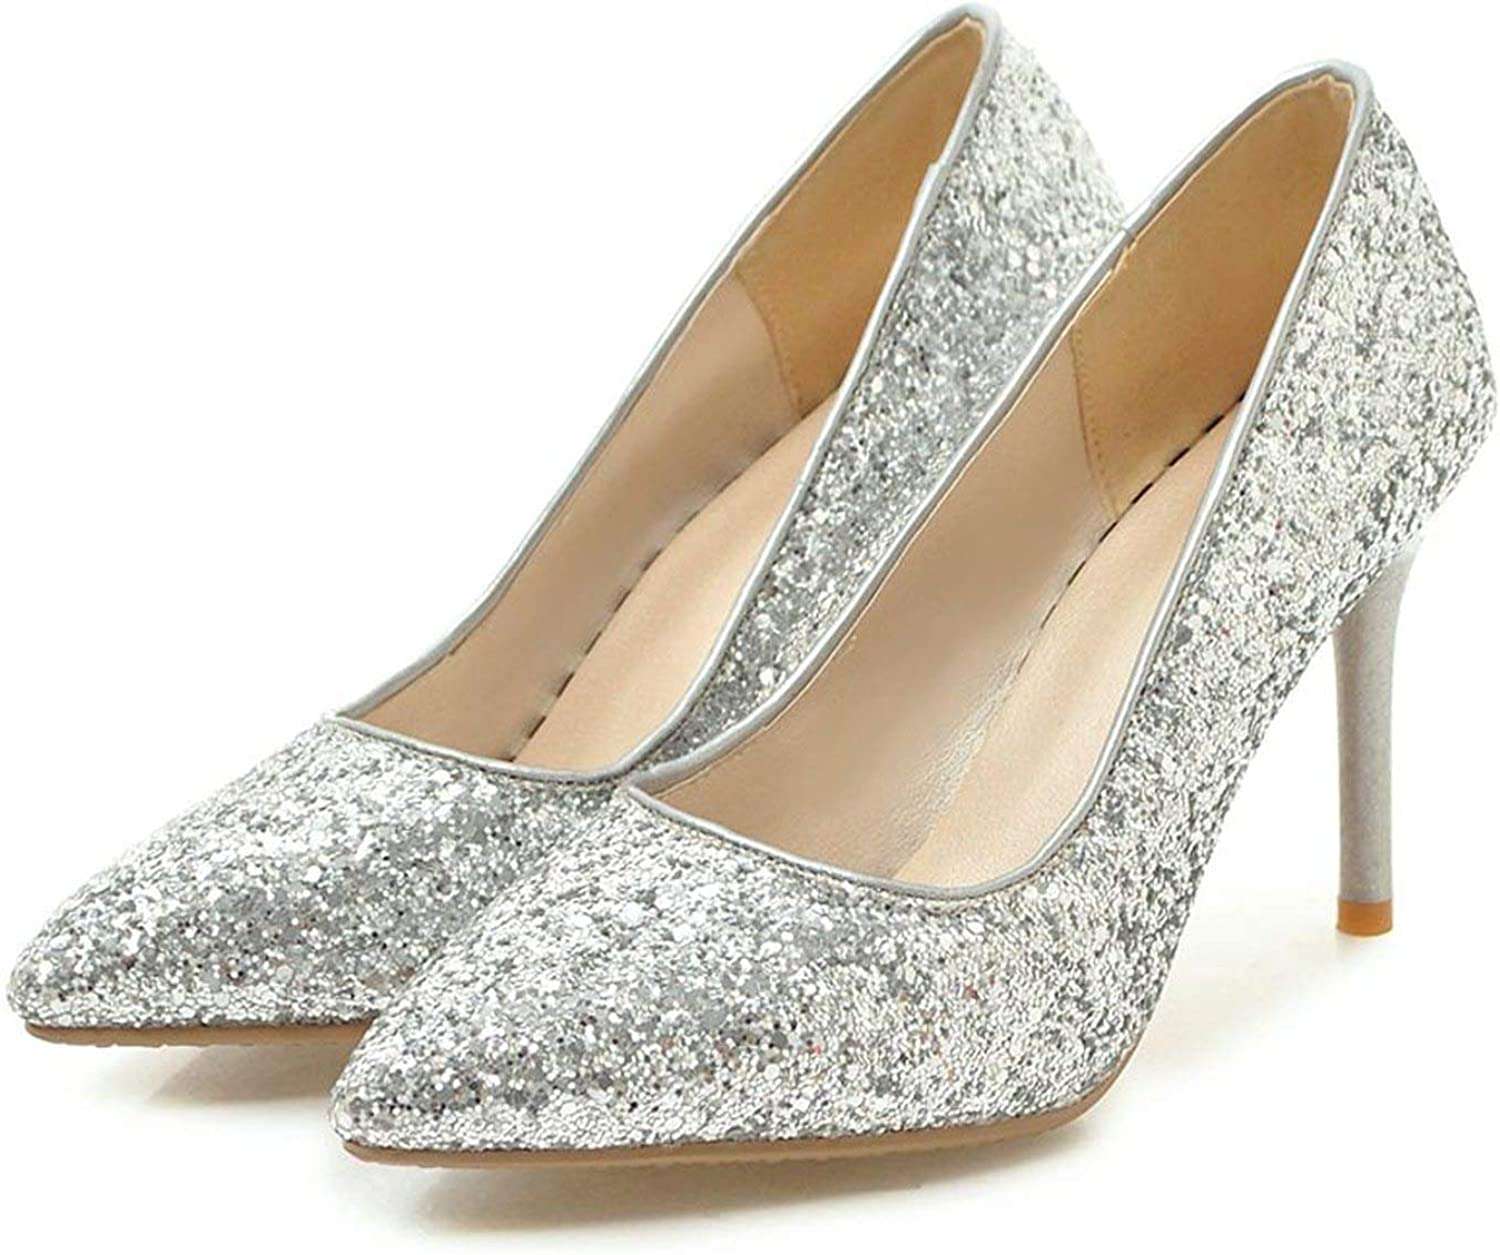 Sexy Thin Heel Pumps shoes Woman gold Silver Red colors Sequin Cloth Stiletto Party Wedding shoes